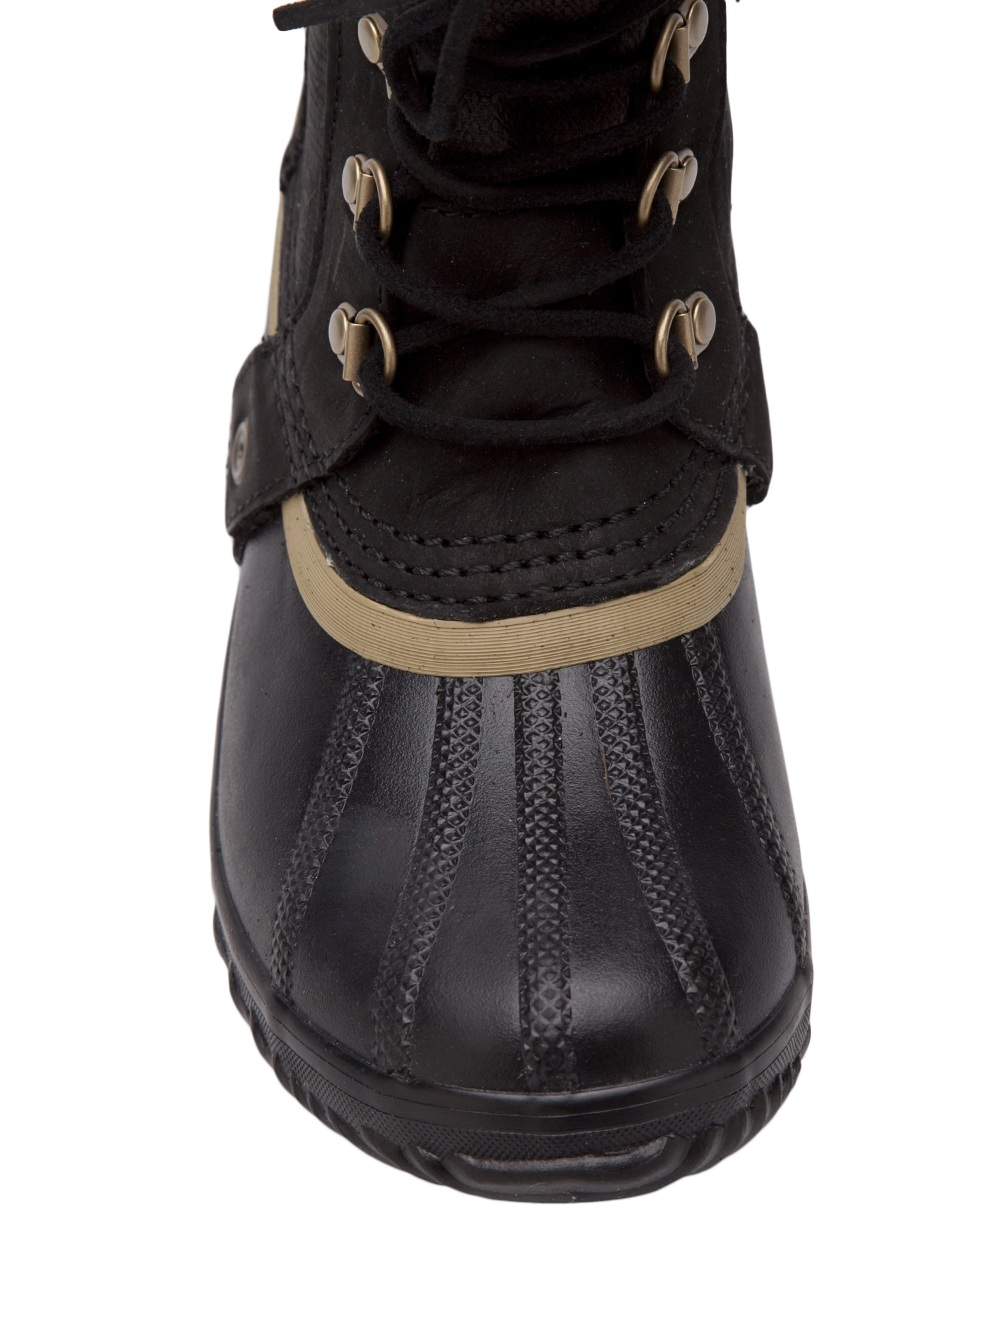 Sorel Conquest Carly Tall Boot in Black